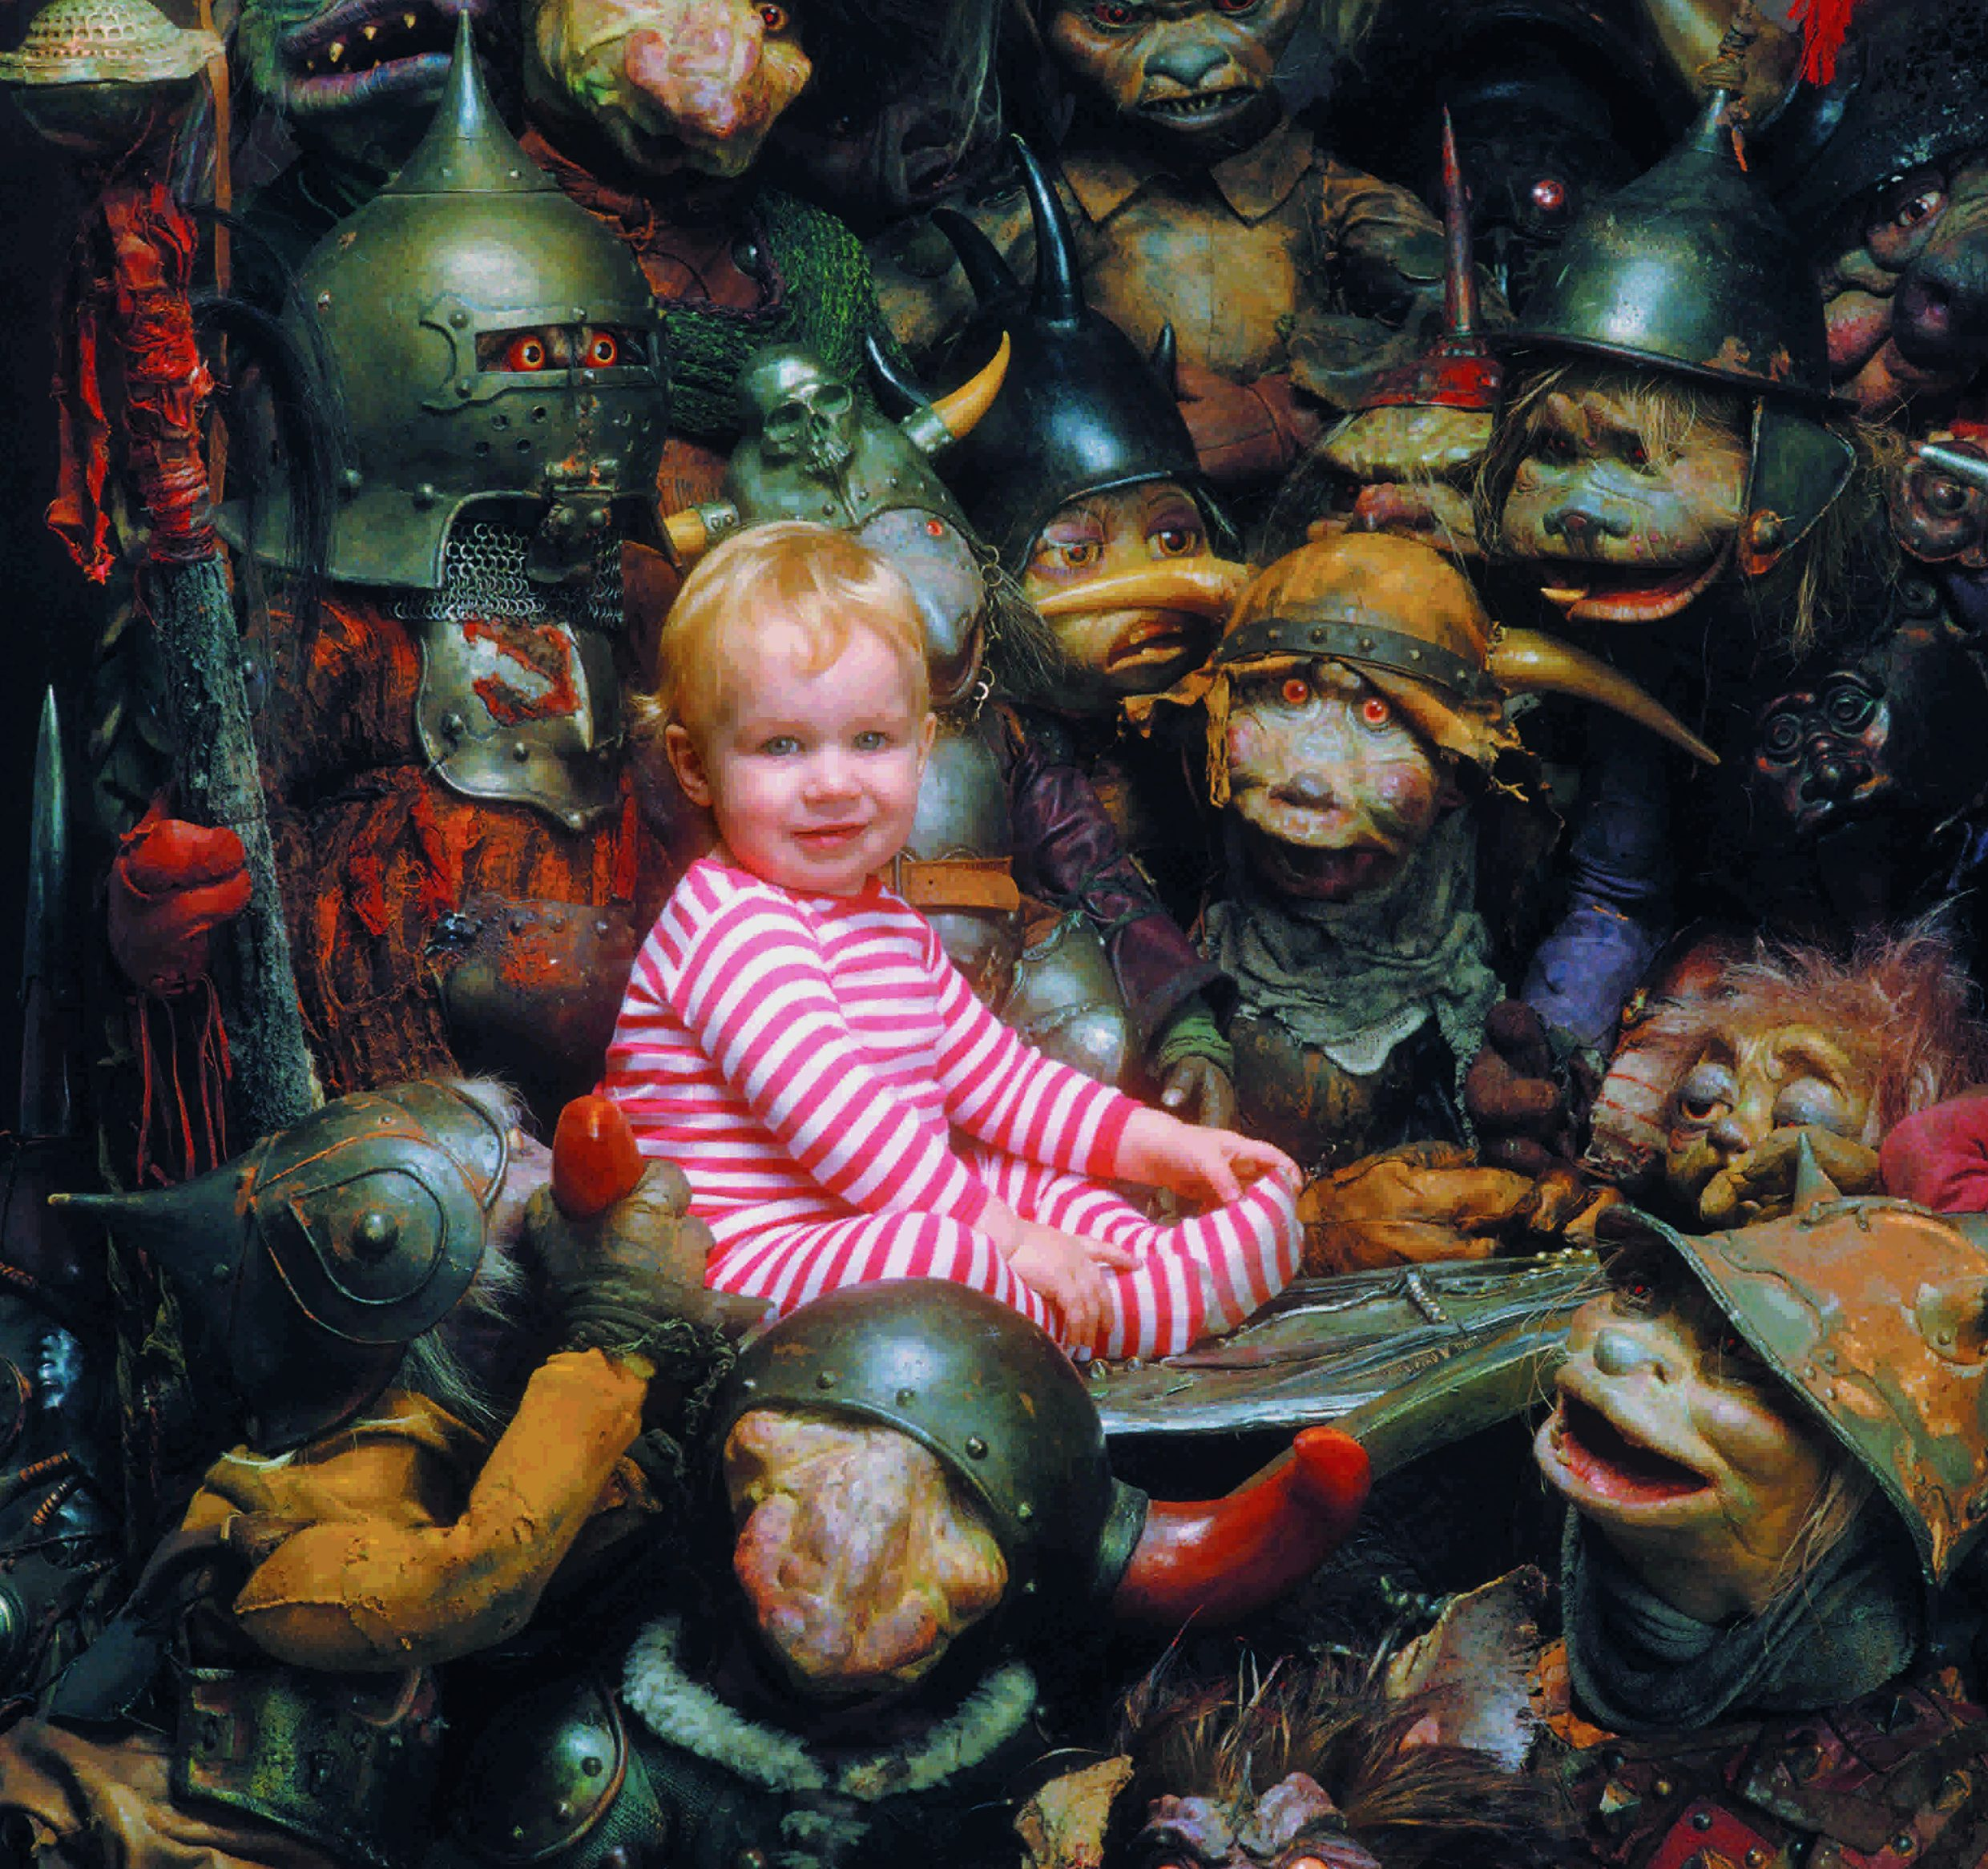 catching up with the baby from labyrinth body image 1477673779 e1597671436846 20 Traumatising Moments In 80s Kids' Movies